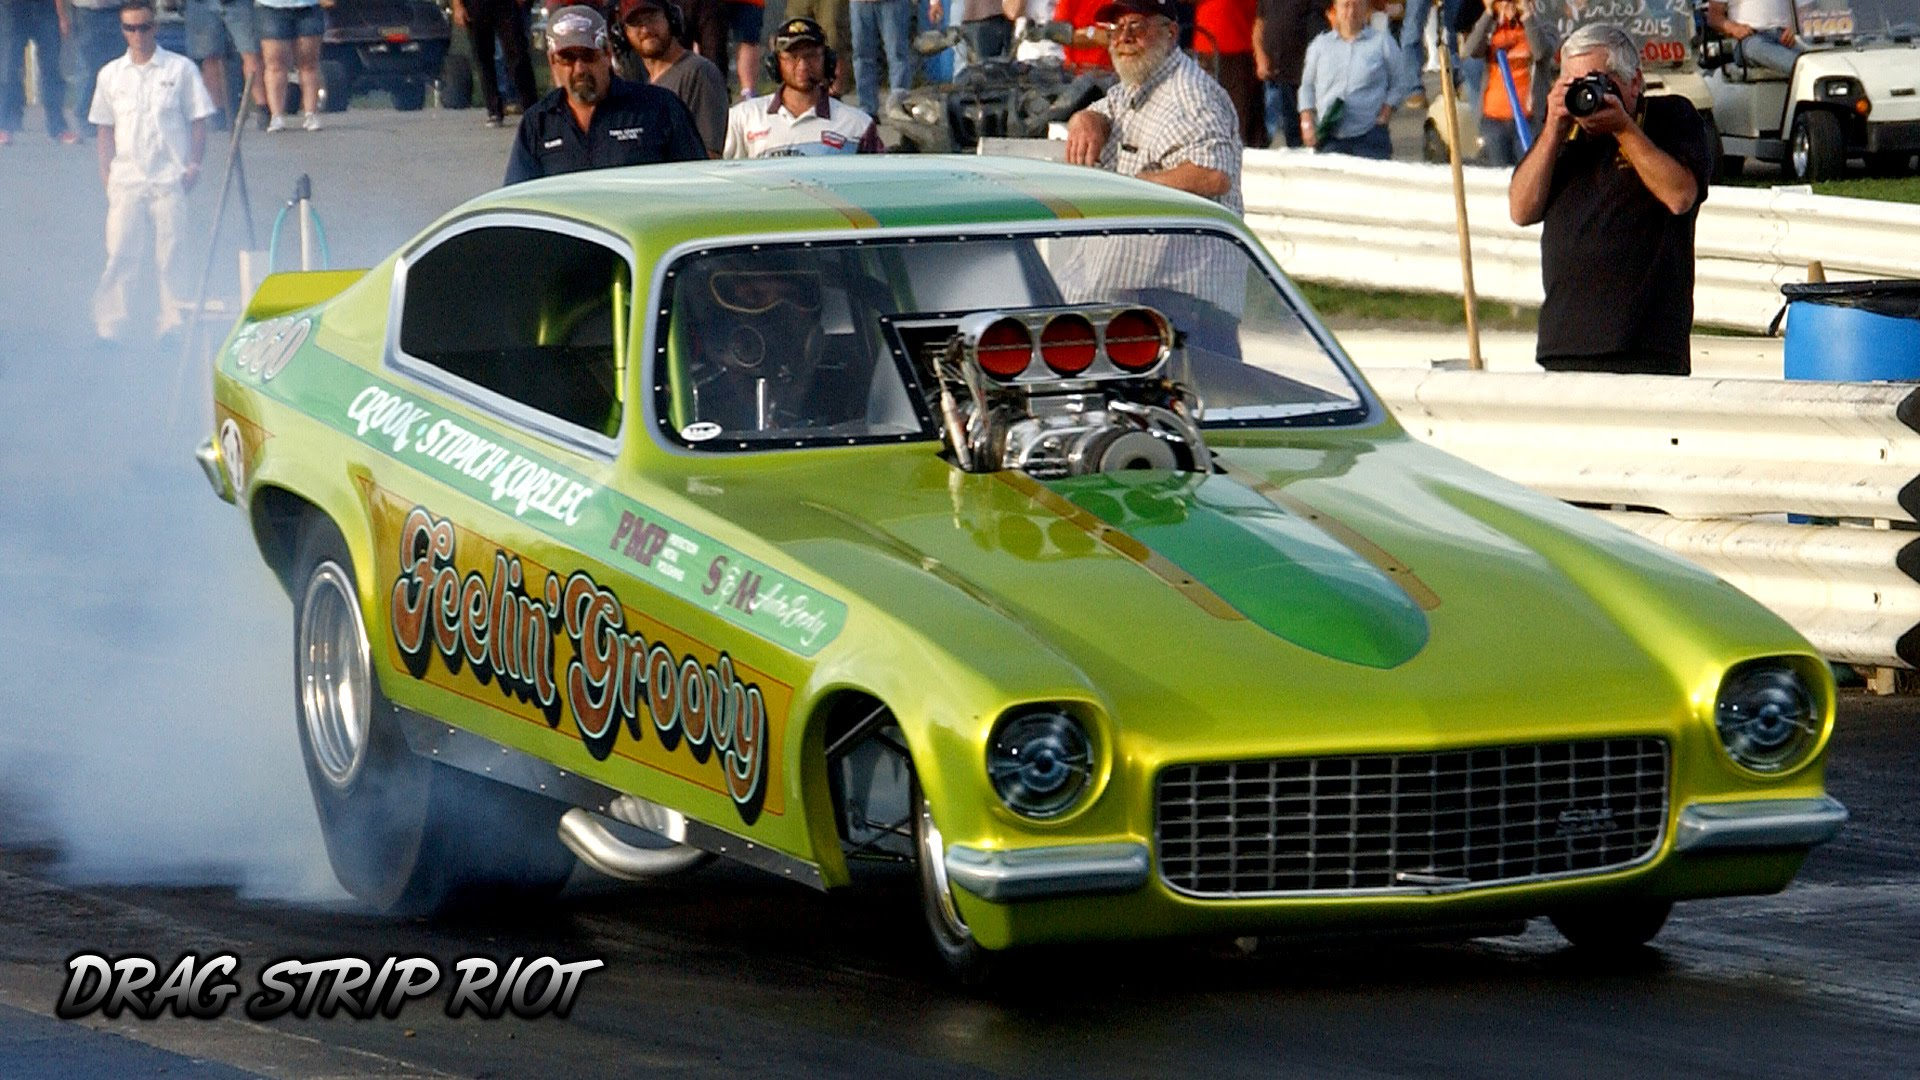 1972 Vega FC Faced The Drag Strip But It Disappointed A Bit